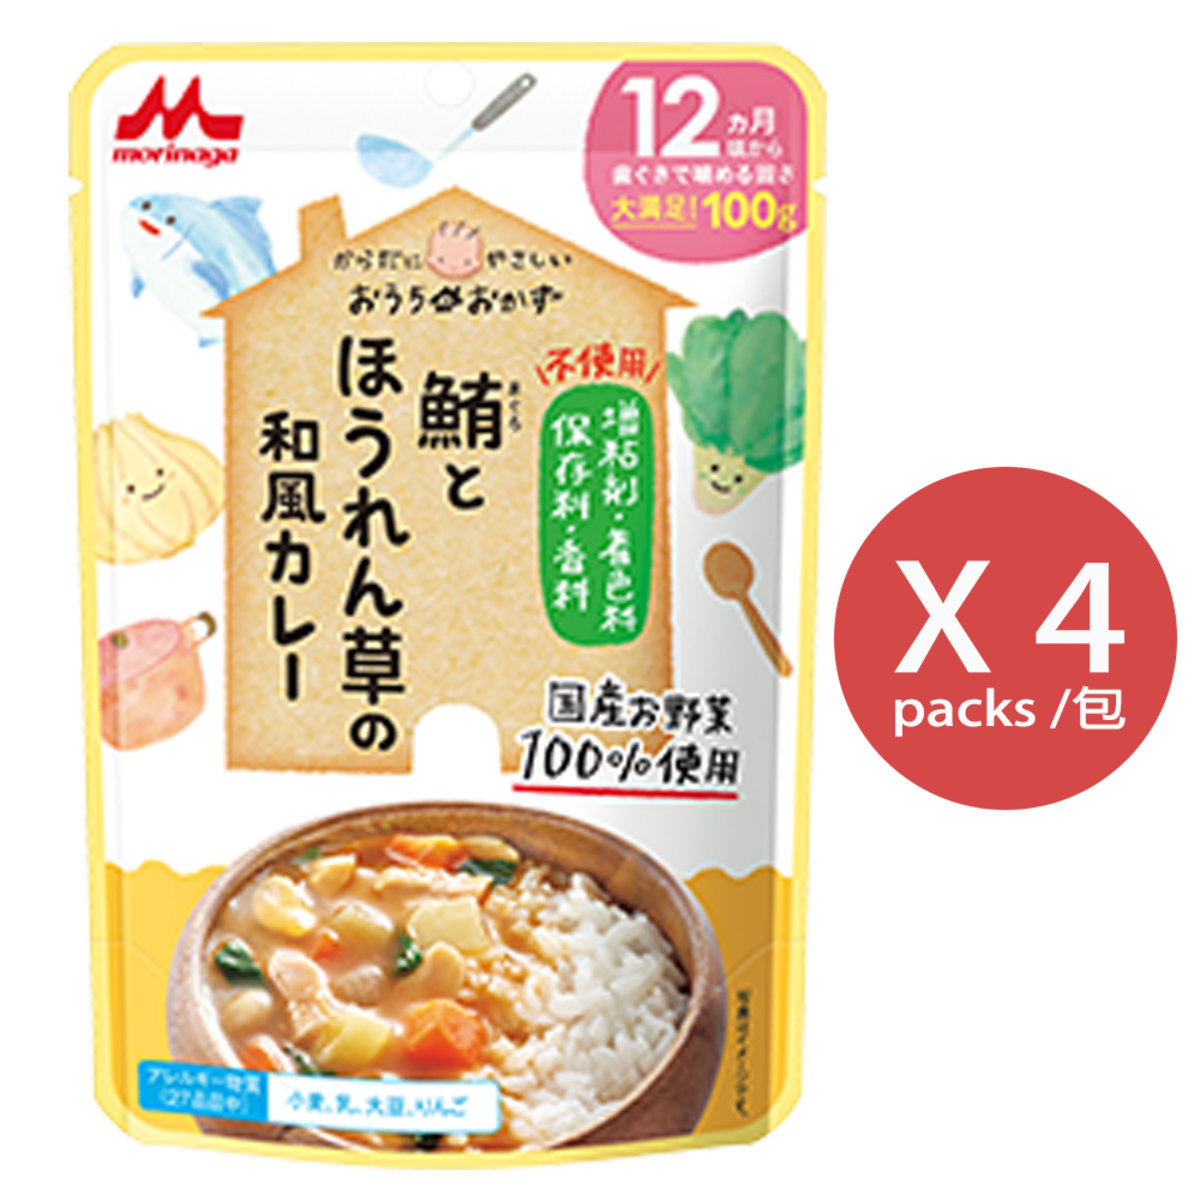 Morinaga (Curry Tuna and Spinach) x 4 Pack